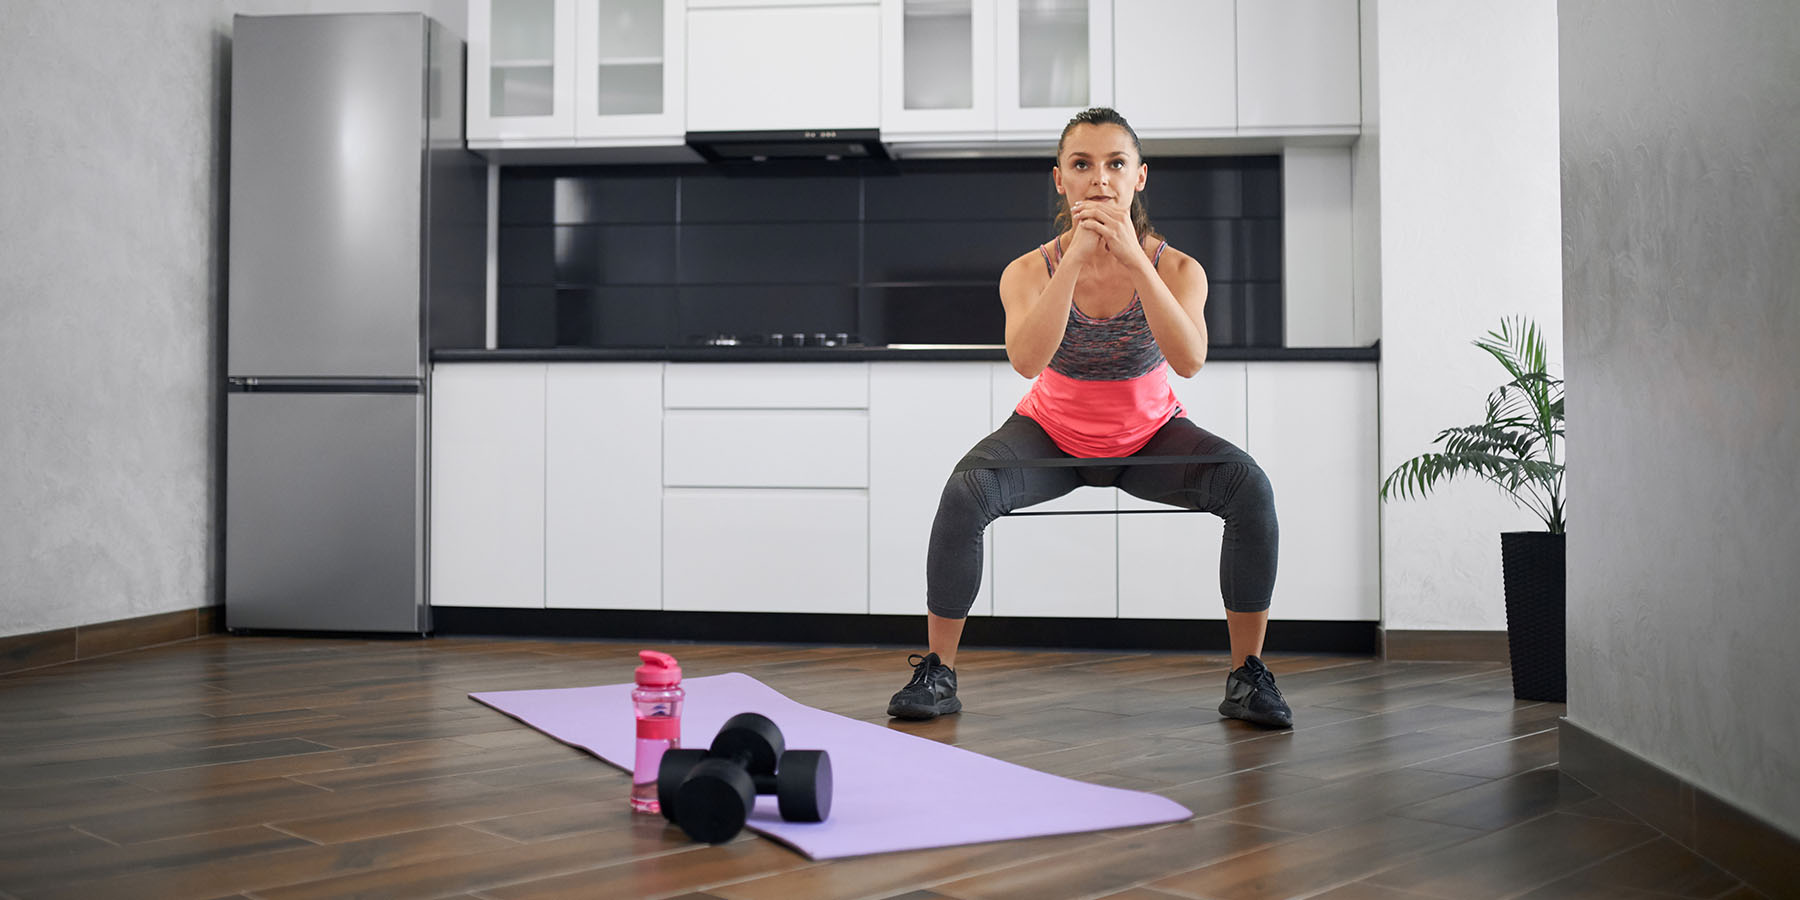 hiit workout routine at home